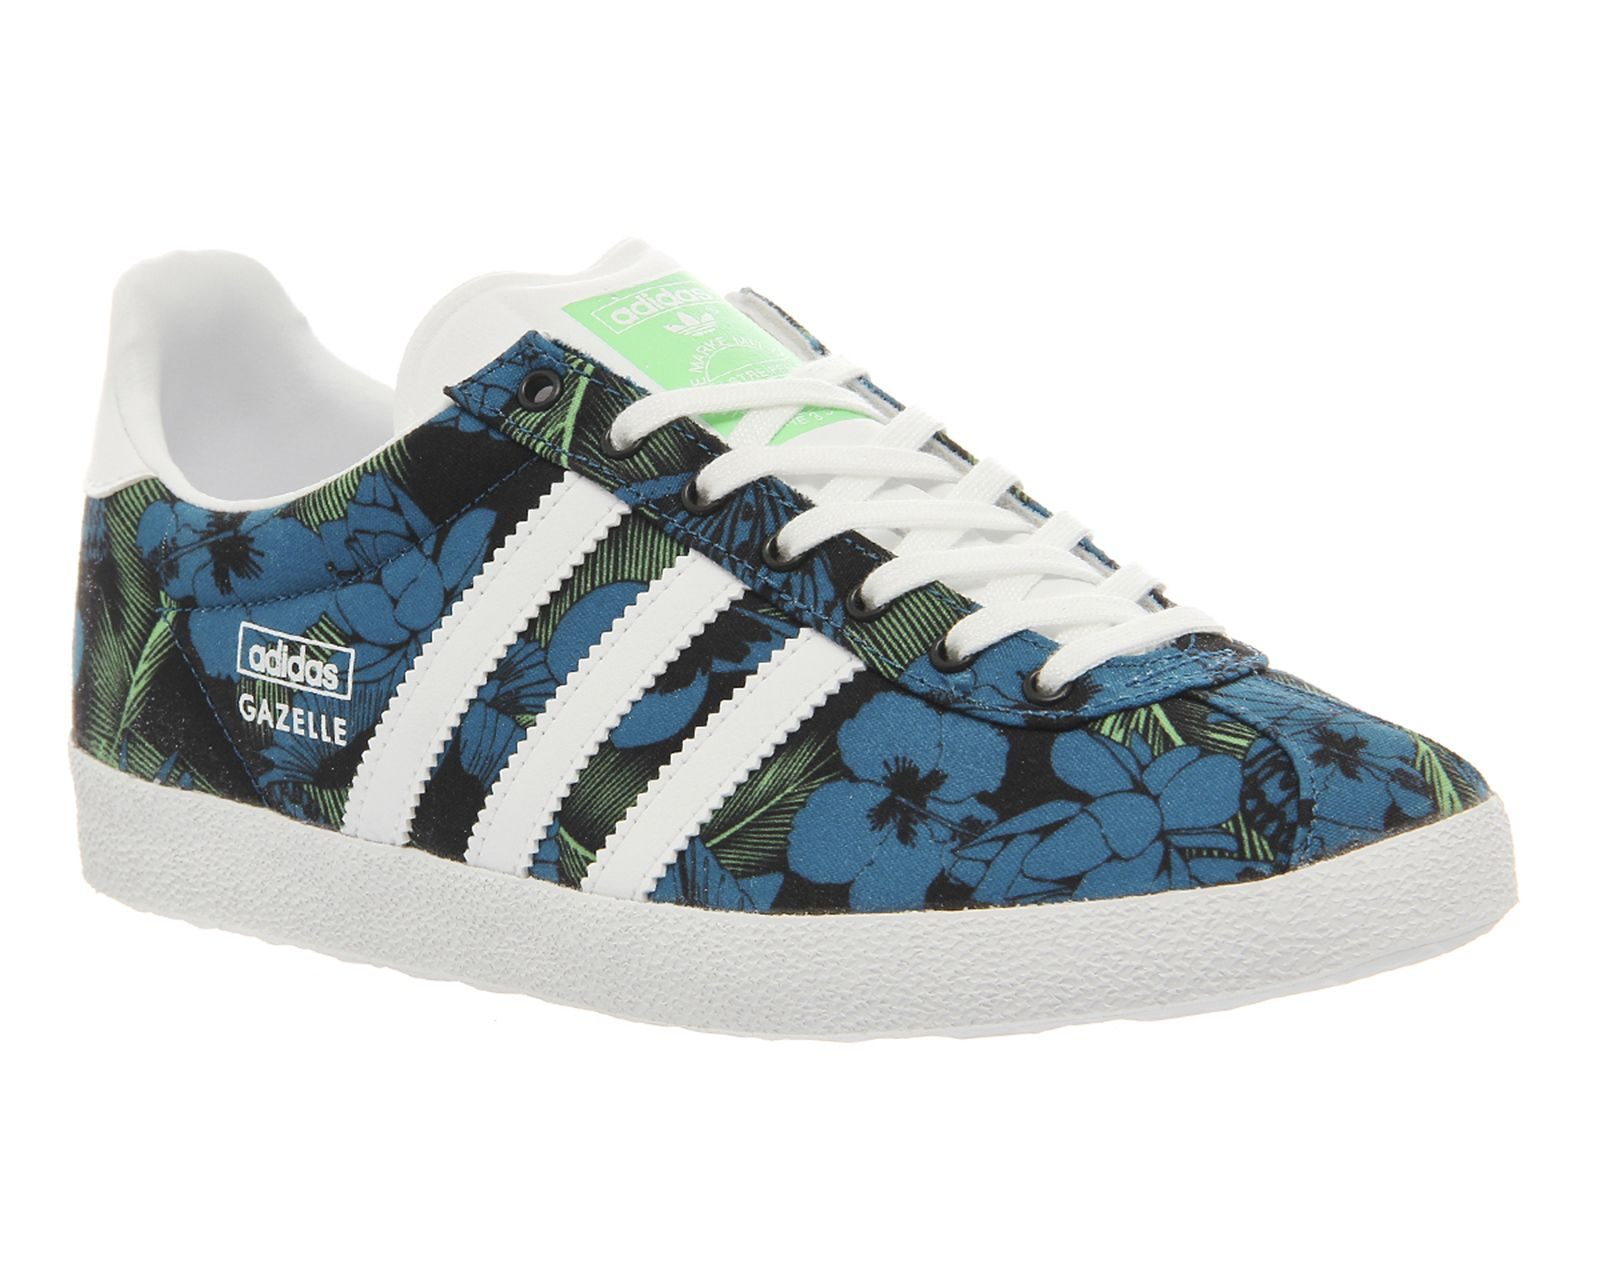 adidas gazelle black and white floral